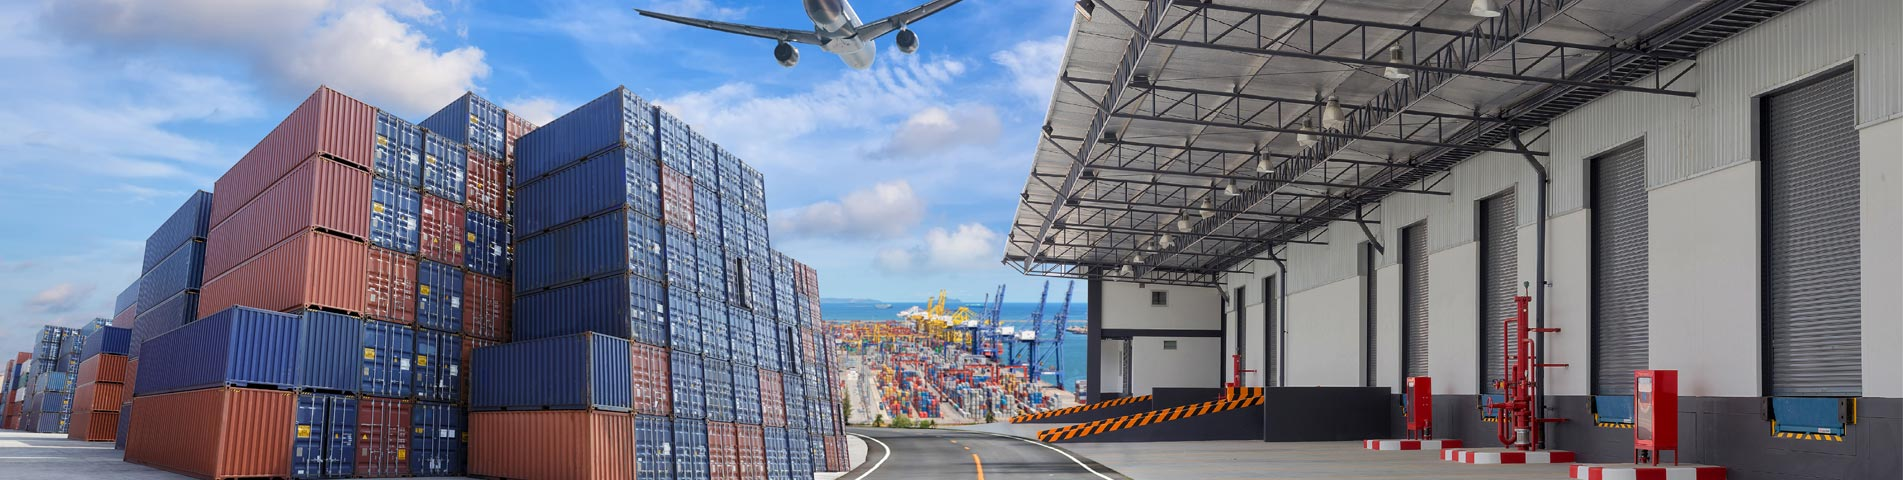 Australian Based Freight Forwarding Services